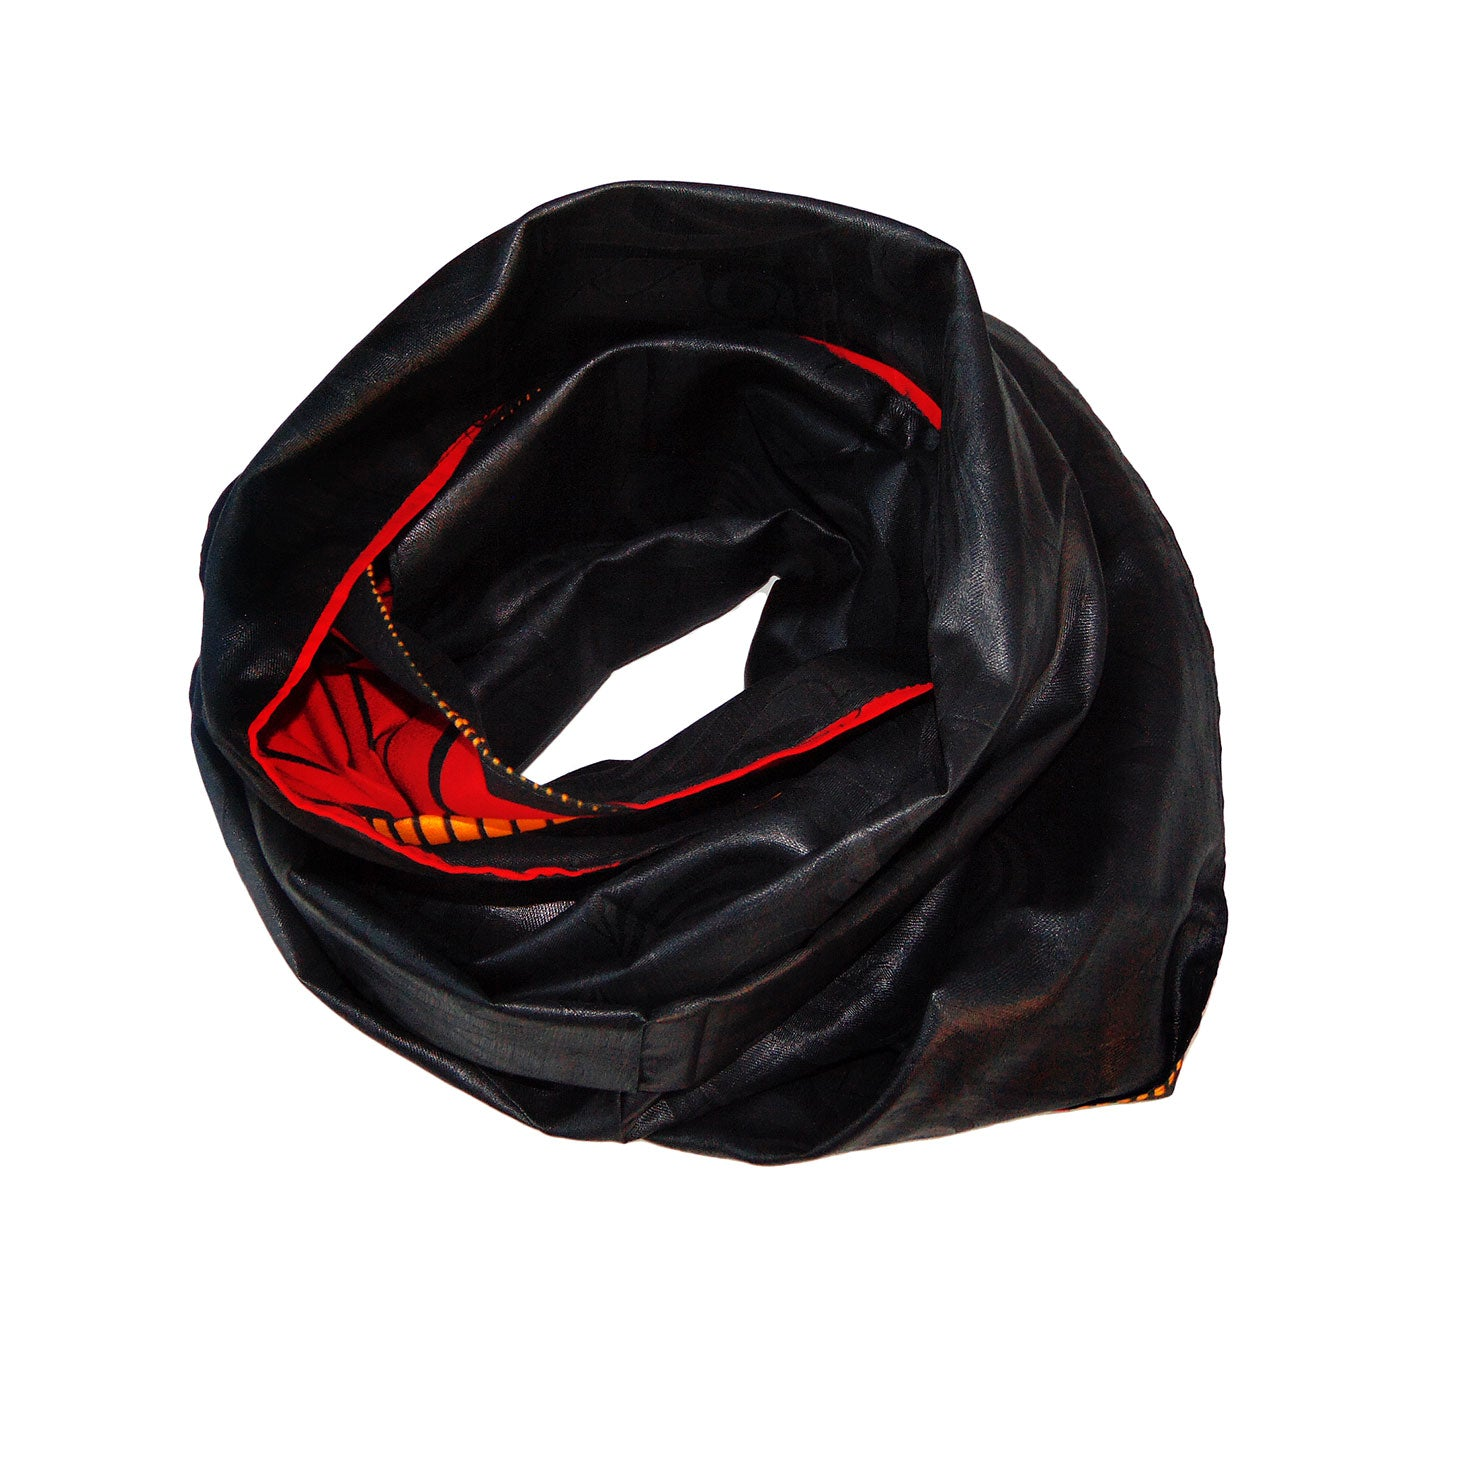 SALLY REVERSIBLE SCARF, HEADWRAP